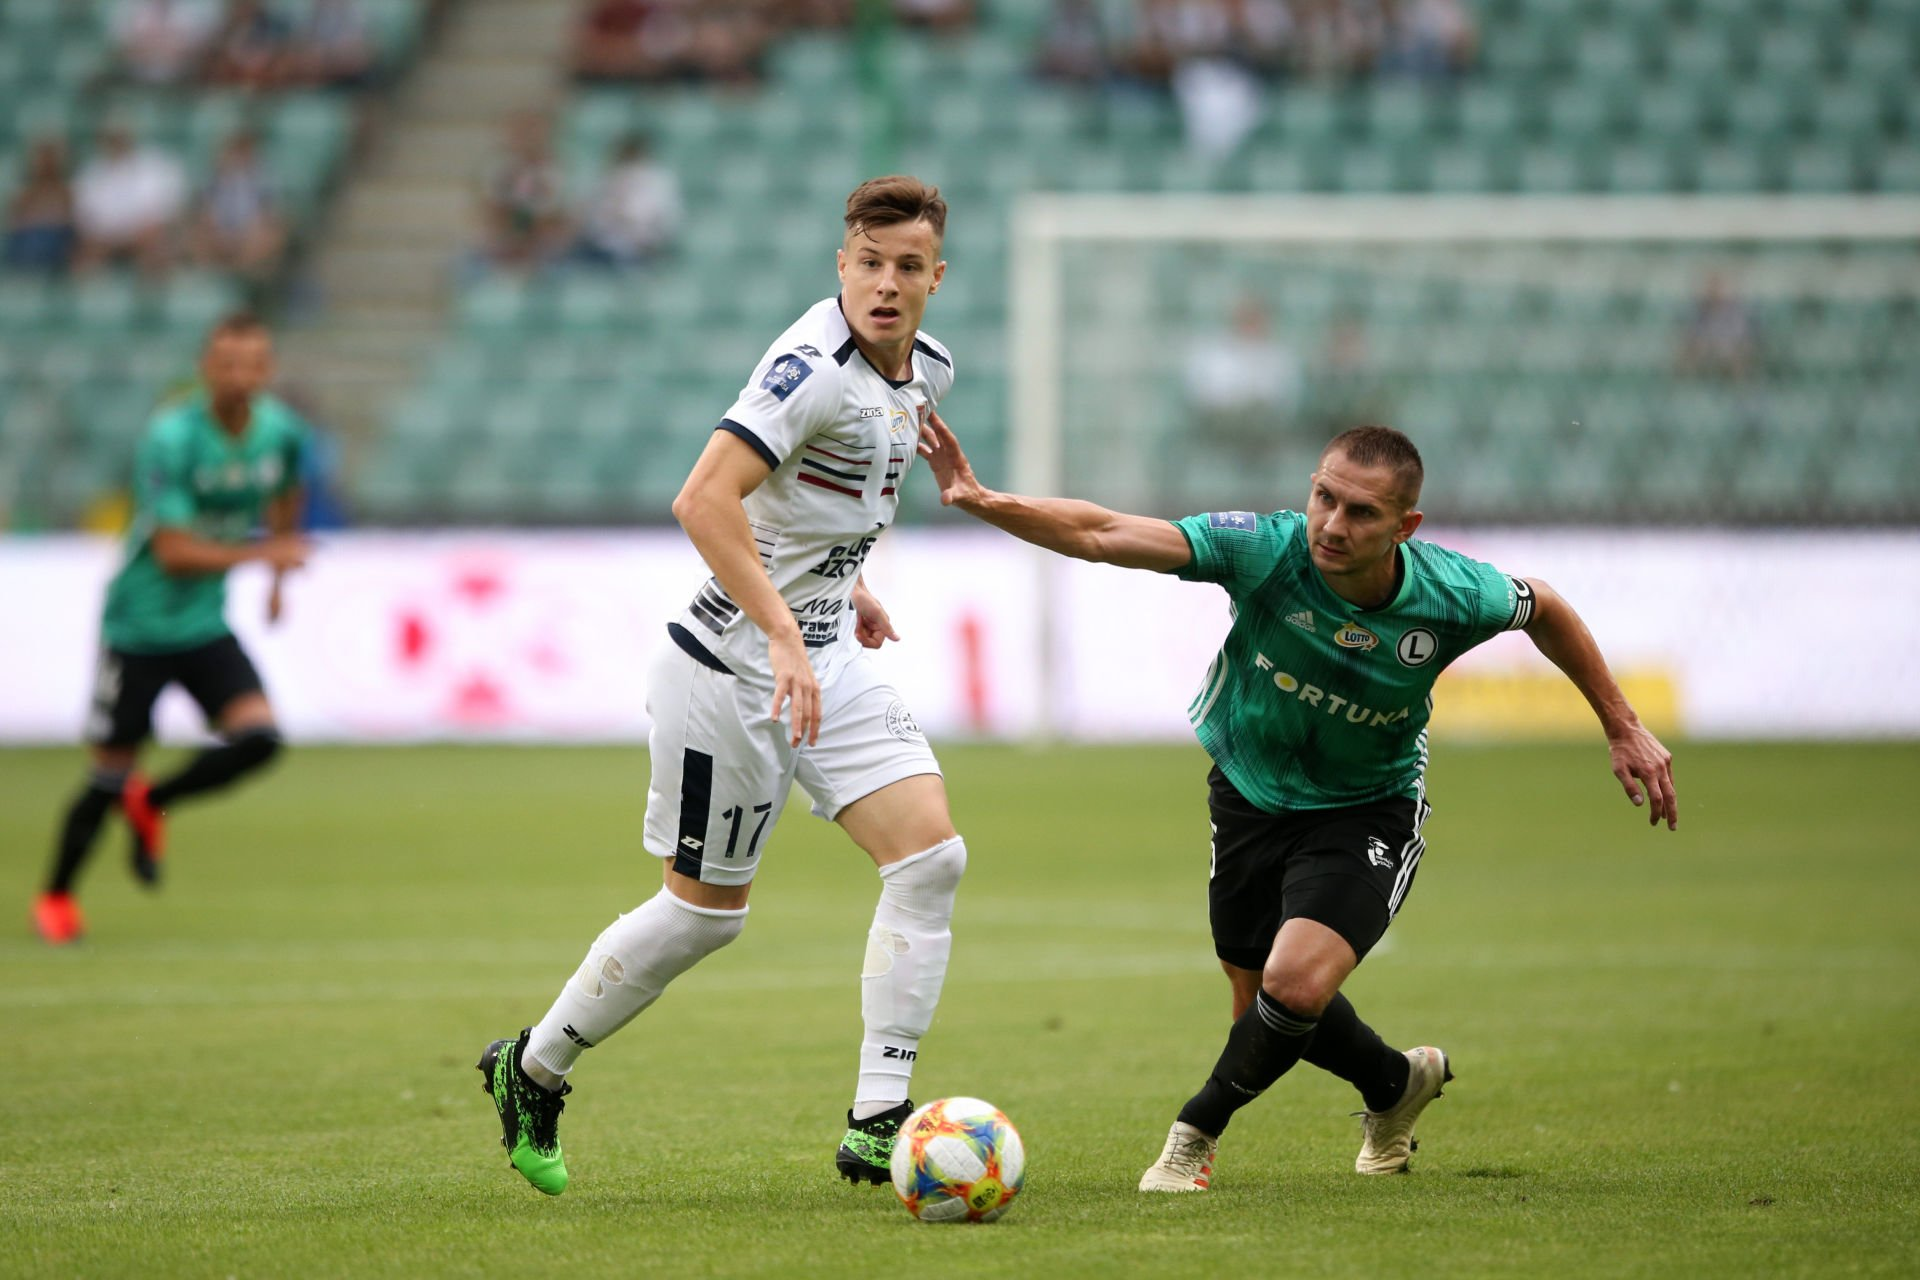 WARSZAWA 21.07.2019 MECZ 1. KOLEJKA PKO EKSTRAKLASA SEZON 2019/20 --- POLISH FOOTBALL TOP LEAGUE MATCH IN WARSAW: LEGIA WARSZAWA - POGON SZCZECIN ZVONIMIR KOZULJ ARTUR JEDRZEJCZYK FOT. PIOTR KUCZA/ 400mm.pl